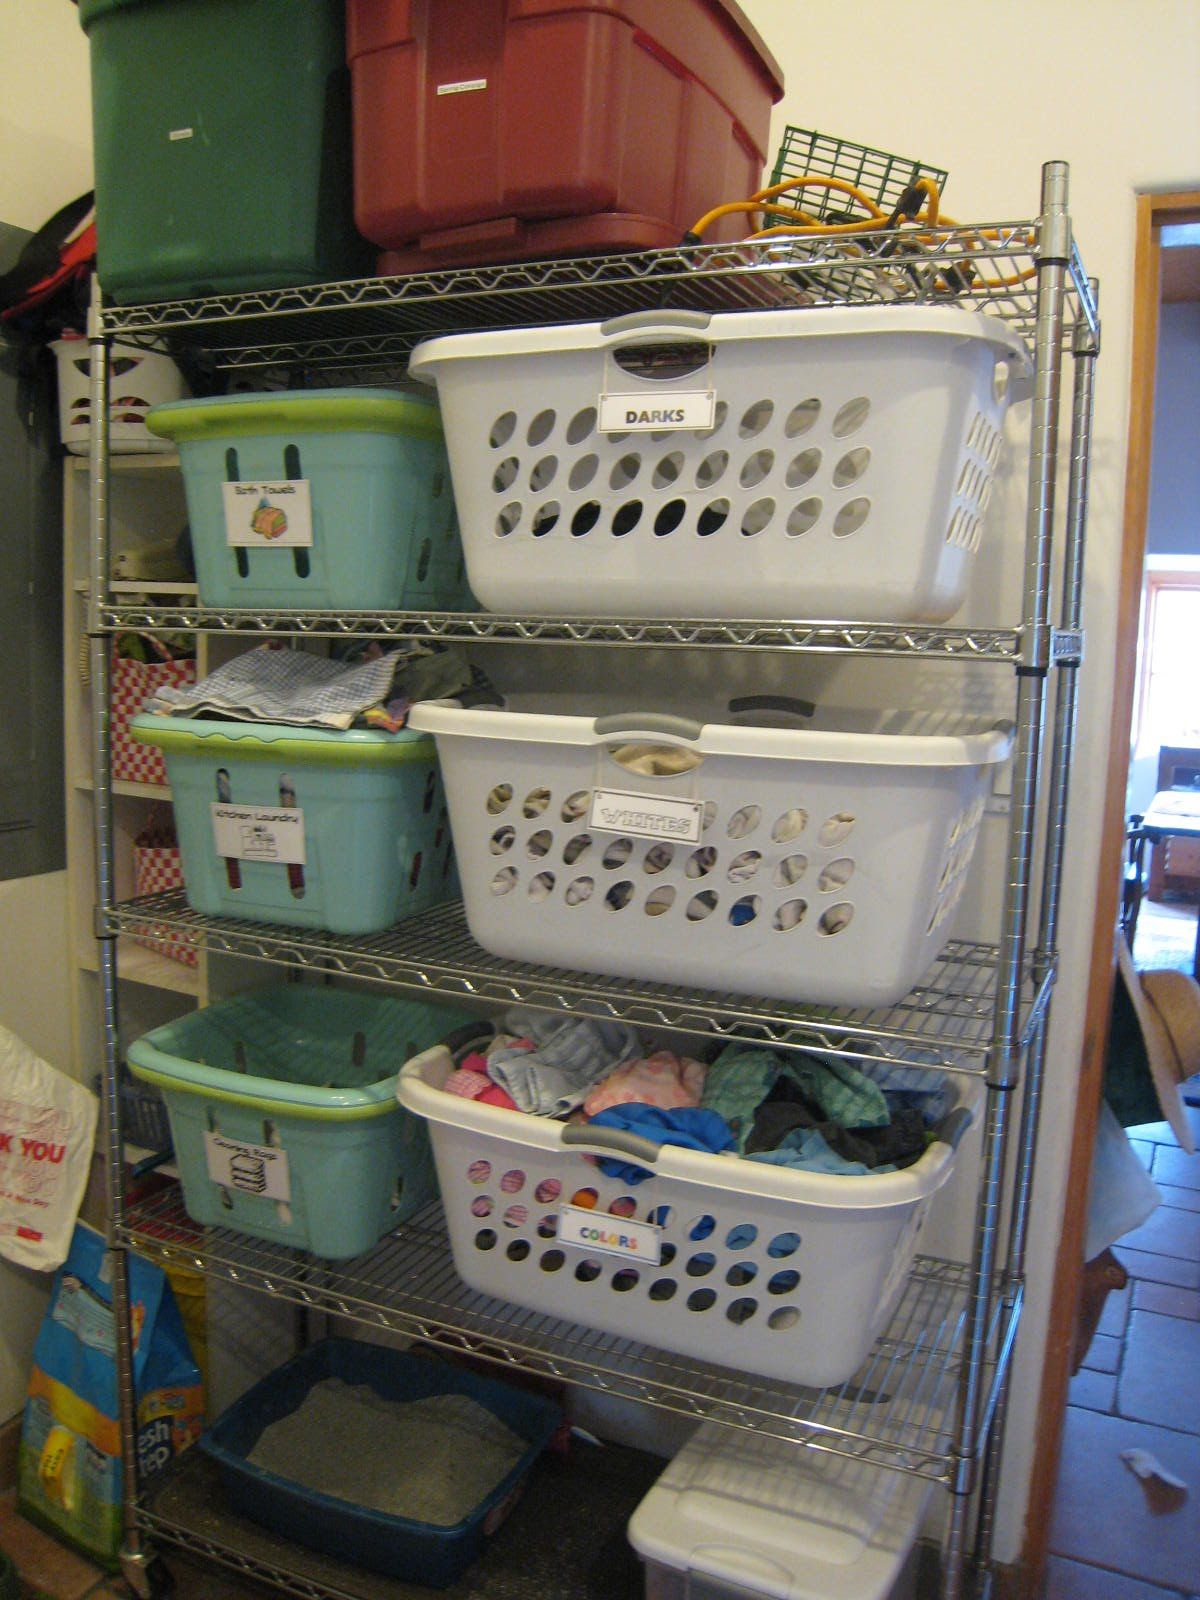 Pin By Jennifer Denning On Scrubby Scrubby Clean Clean Laundry System Laundry Laundry Basket